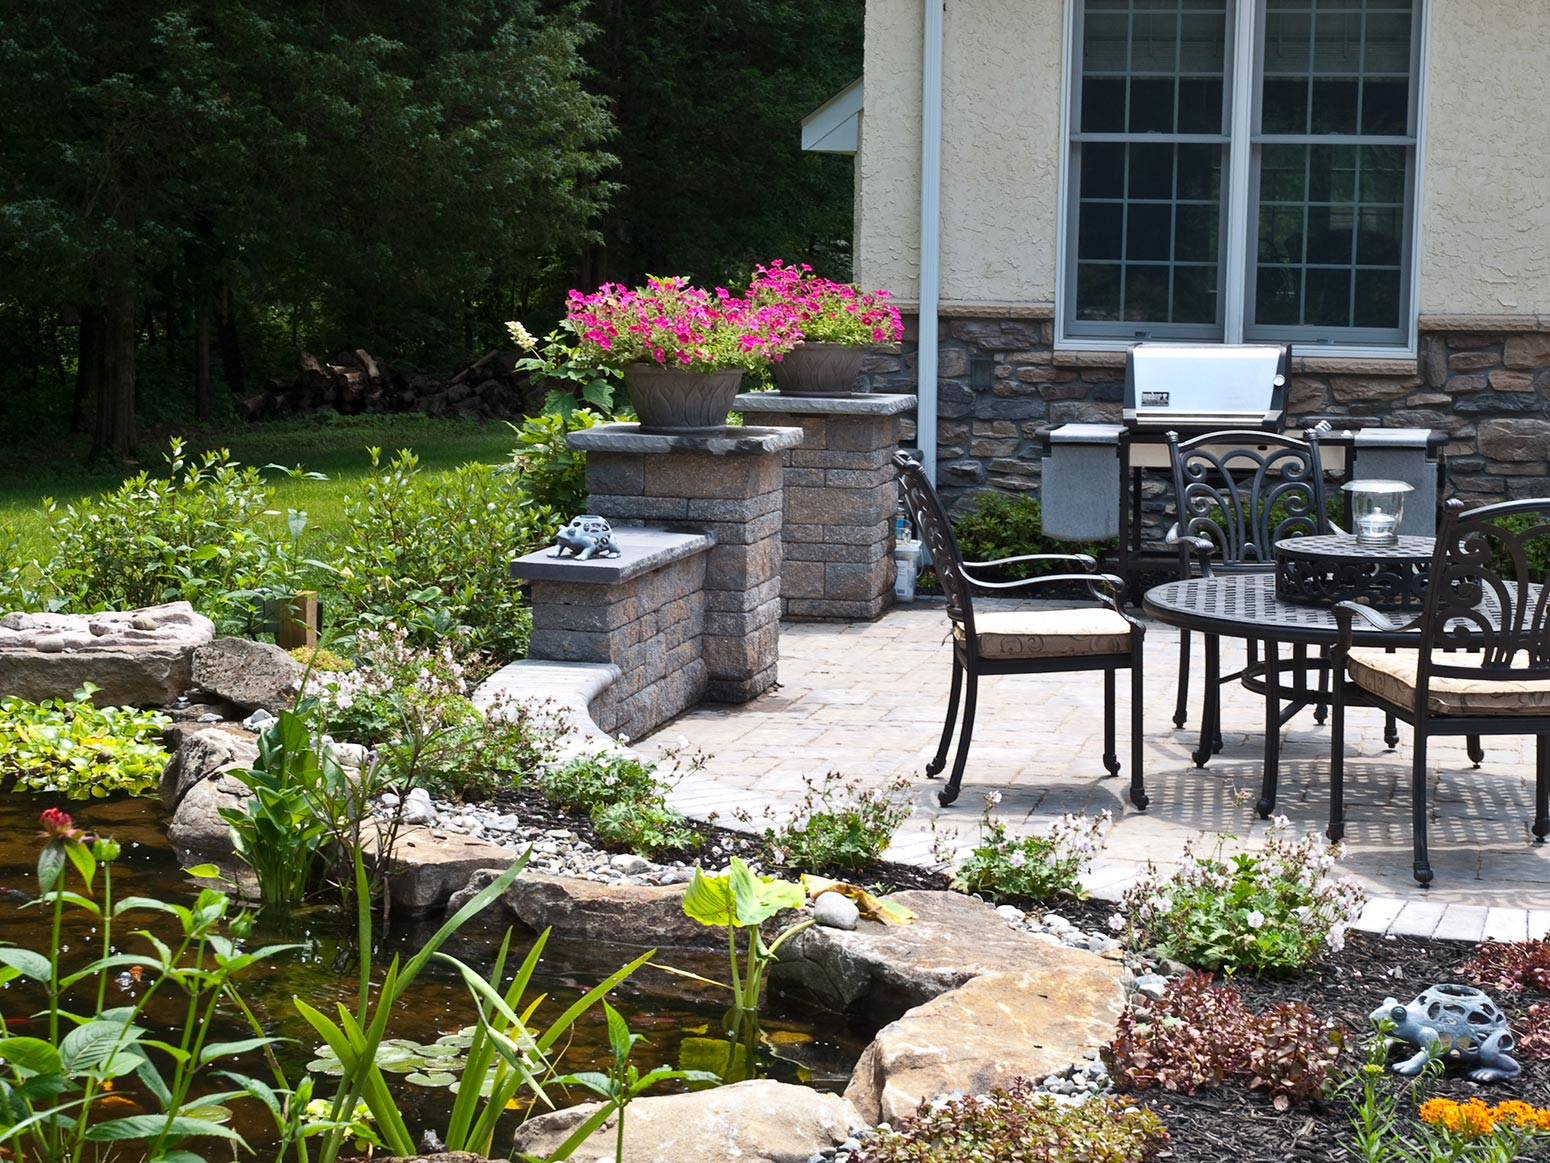 Natural Stone, EP Henry Paver Walkways, Brick Patio ...